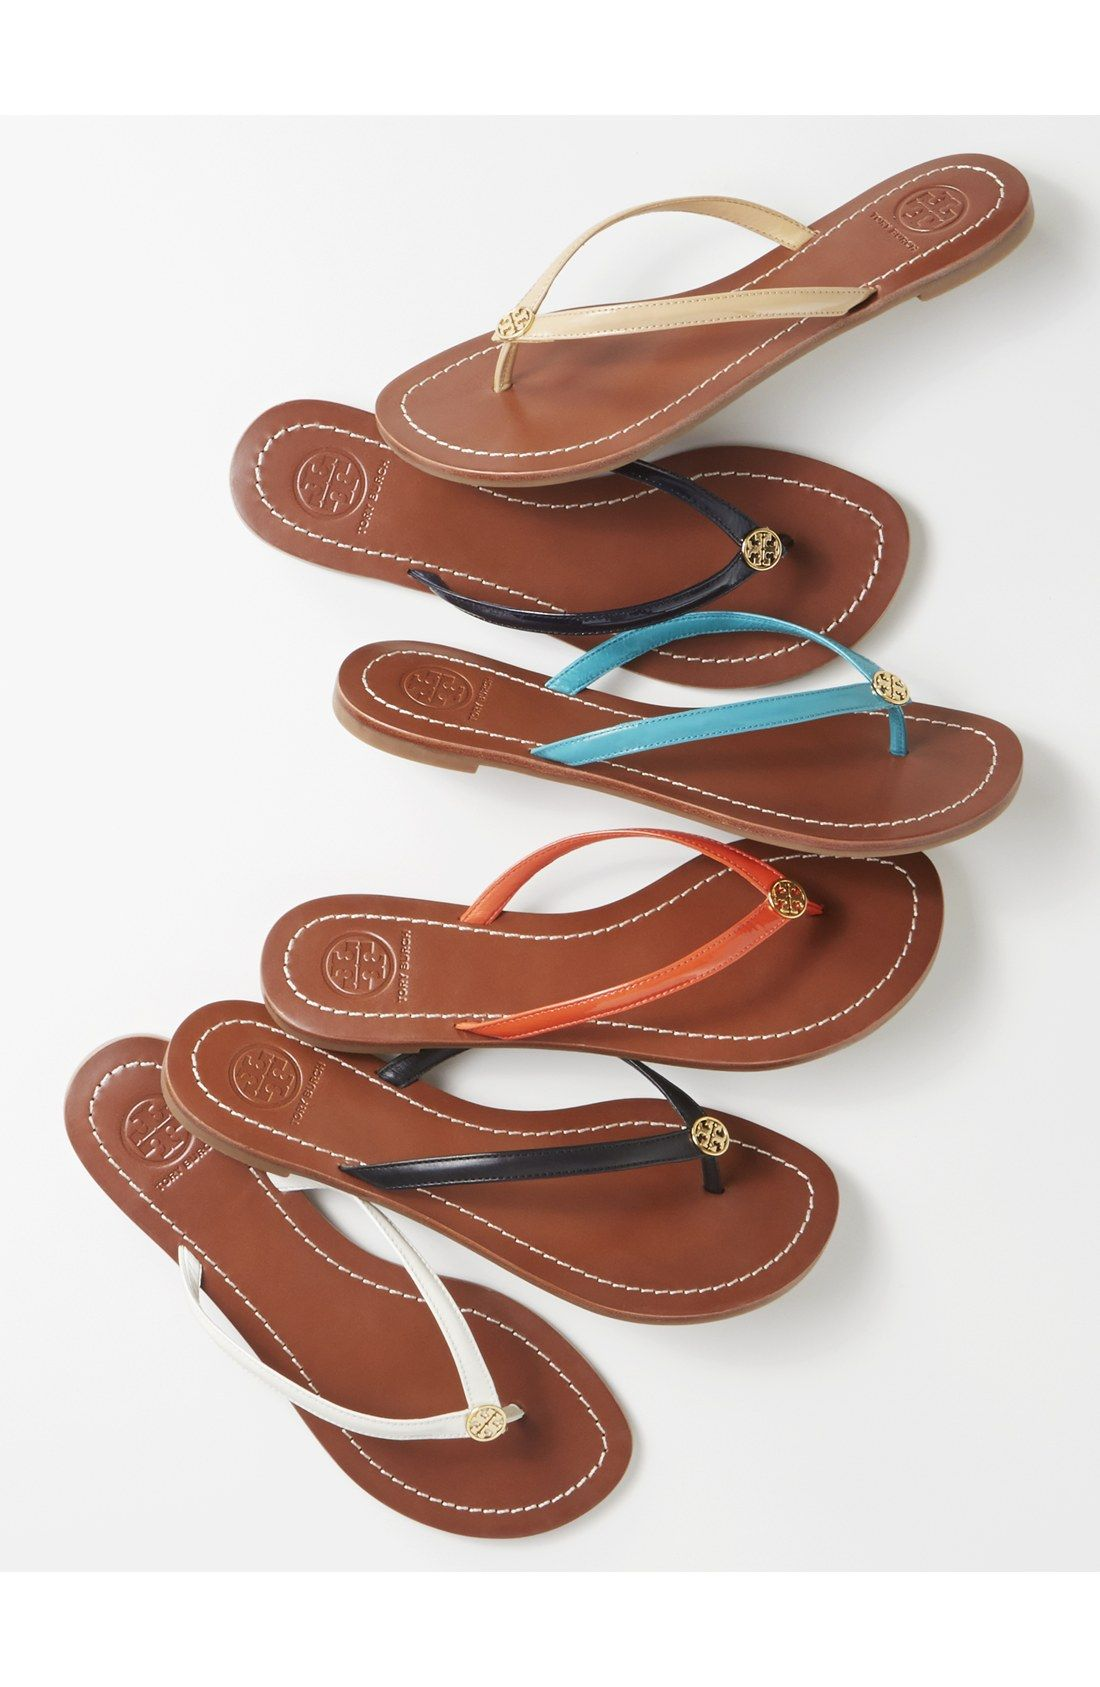 9282e51f96d3 http   www.newtrendclothing.com category tory-burch